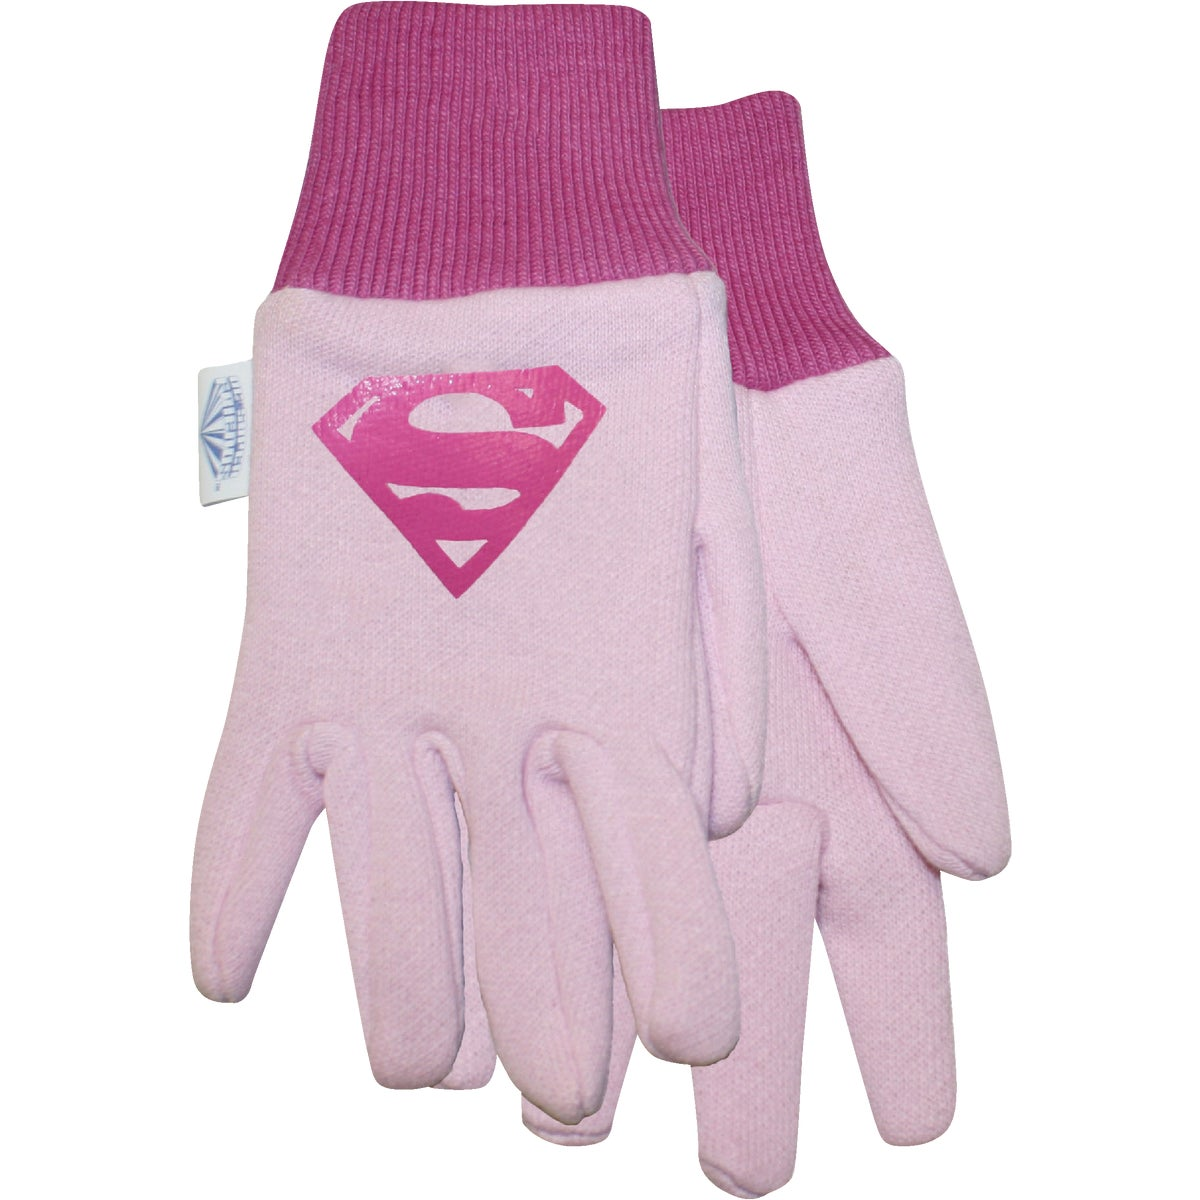 FAIRIES JERSEY GLOVE - FR102K by Midwest Quality Glov